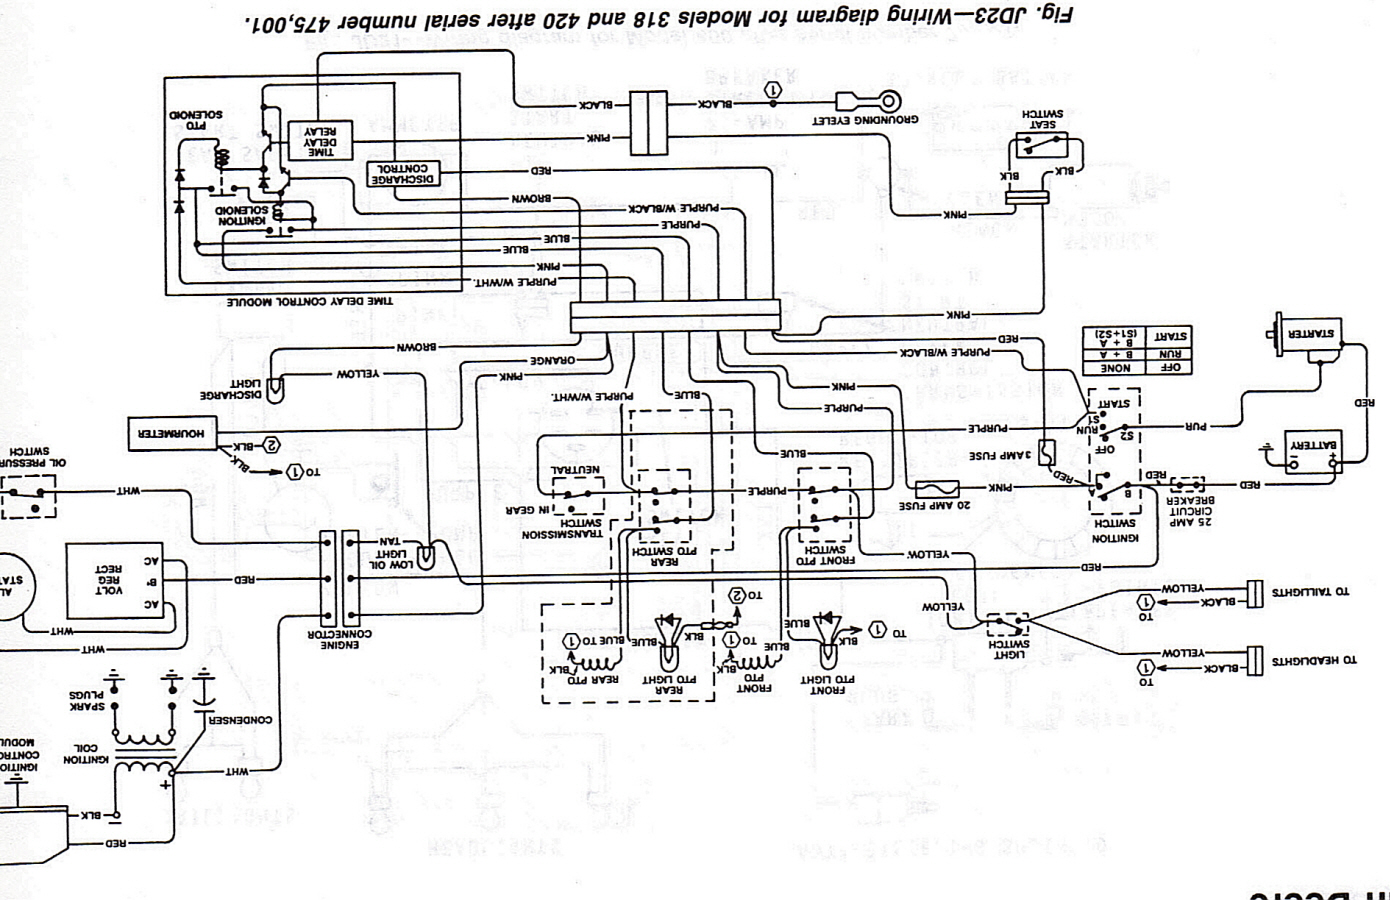 John deere 318 ignition switch wiring diagram wiring solutions john deere 318 wiring diagram b43g asfbconference2016 Image collections